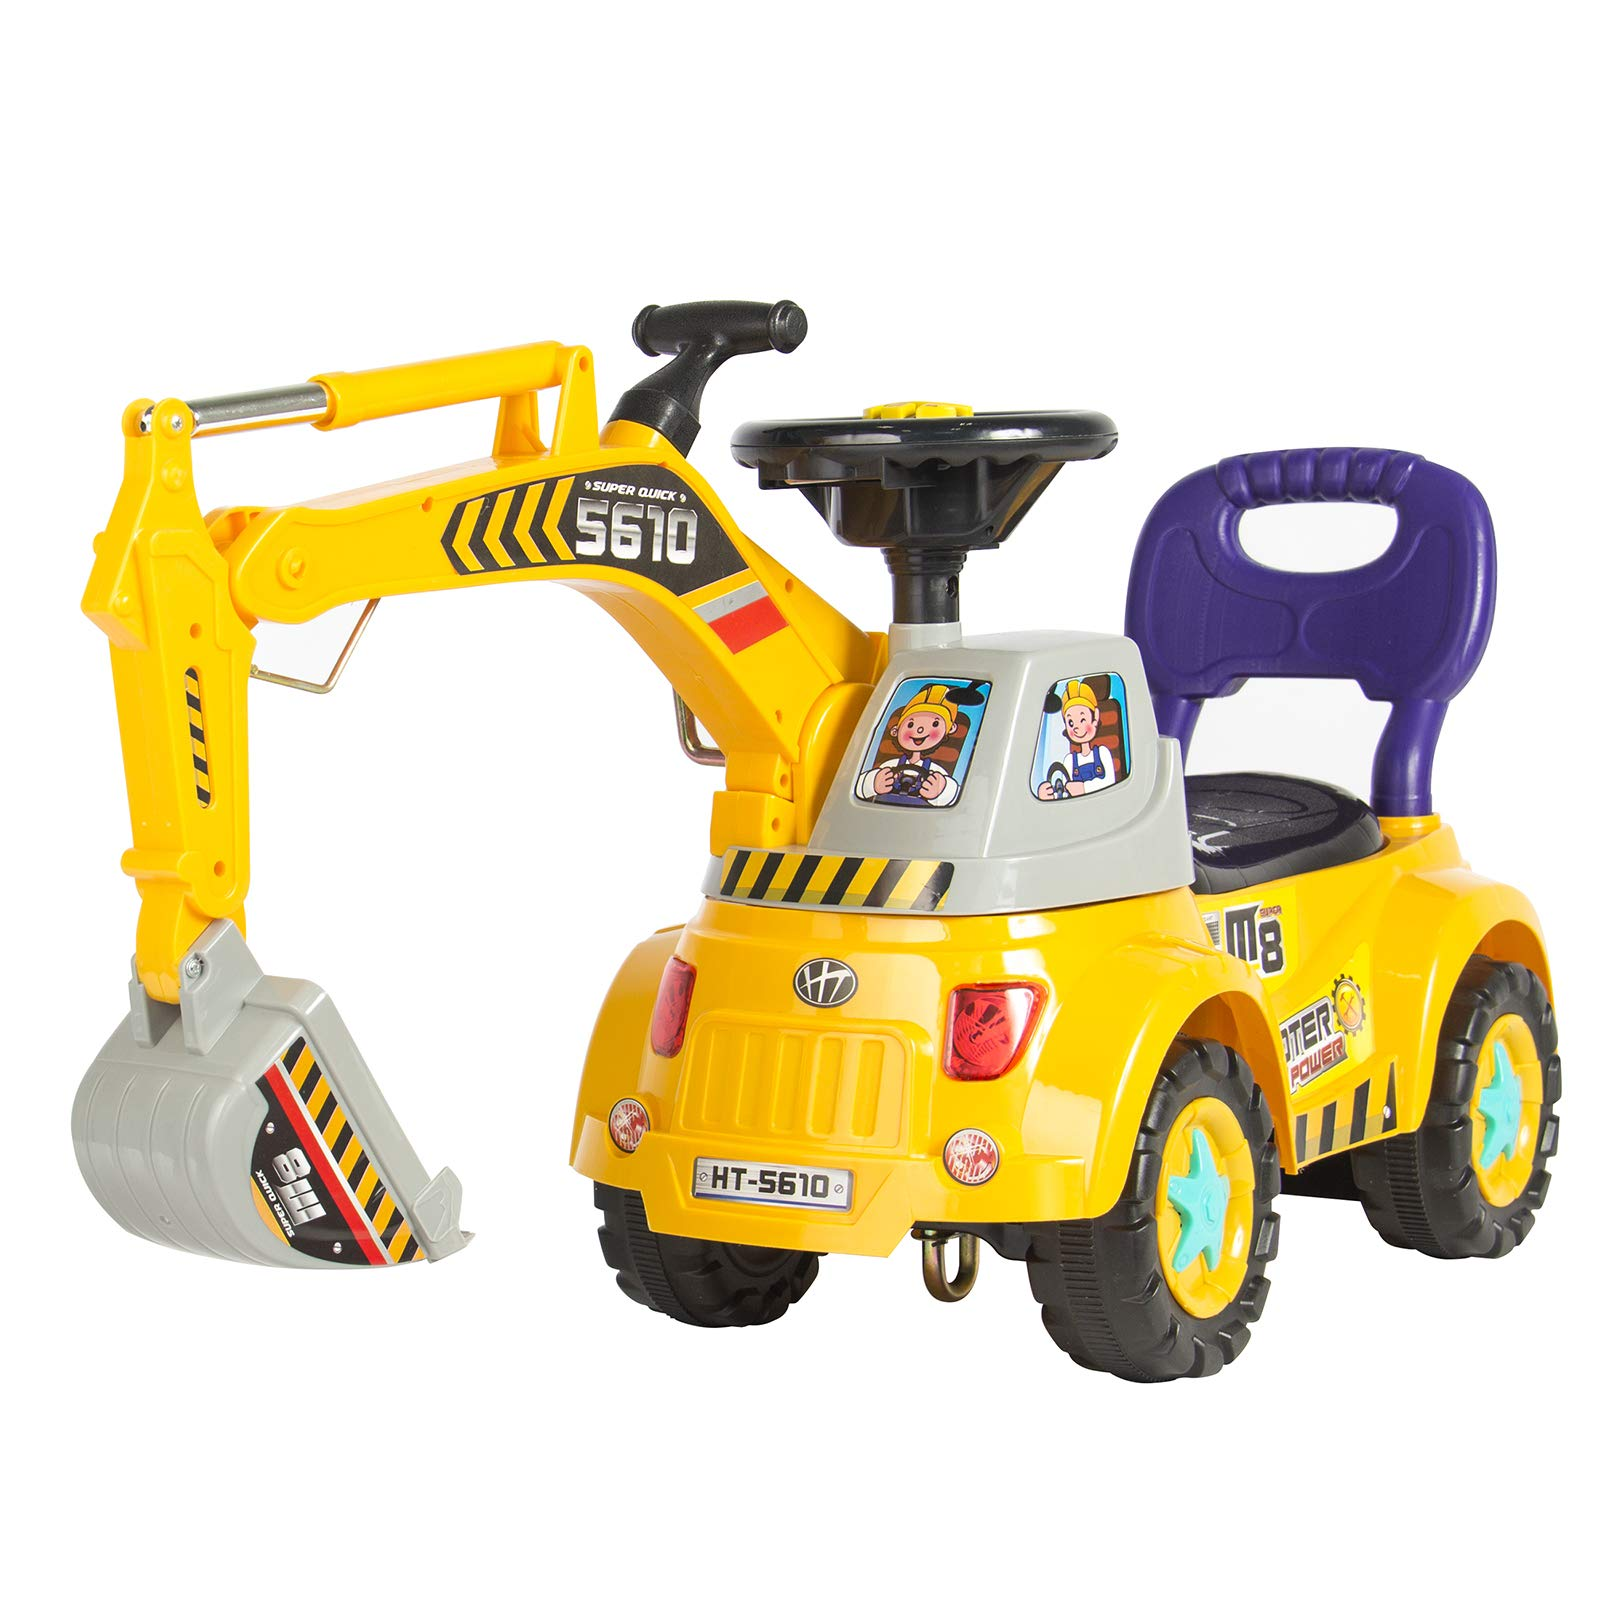 Best Choice Products Kids Excavator Construction Digger Ride-On Truck w/ Gardener Set, Music, Lights, Storage - Yellow